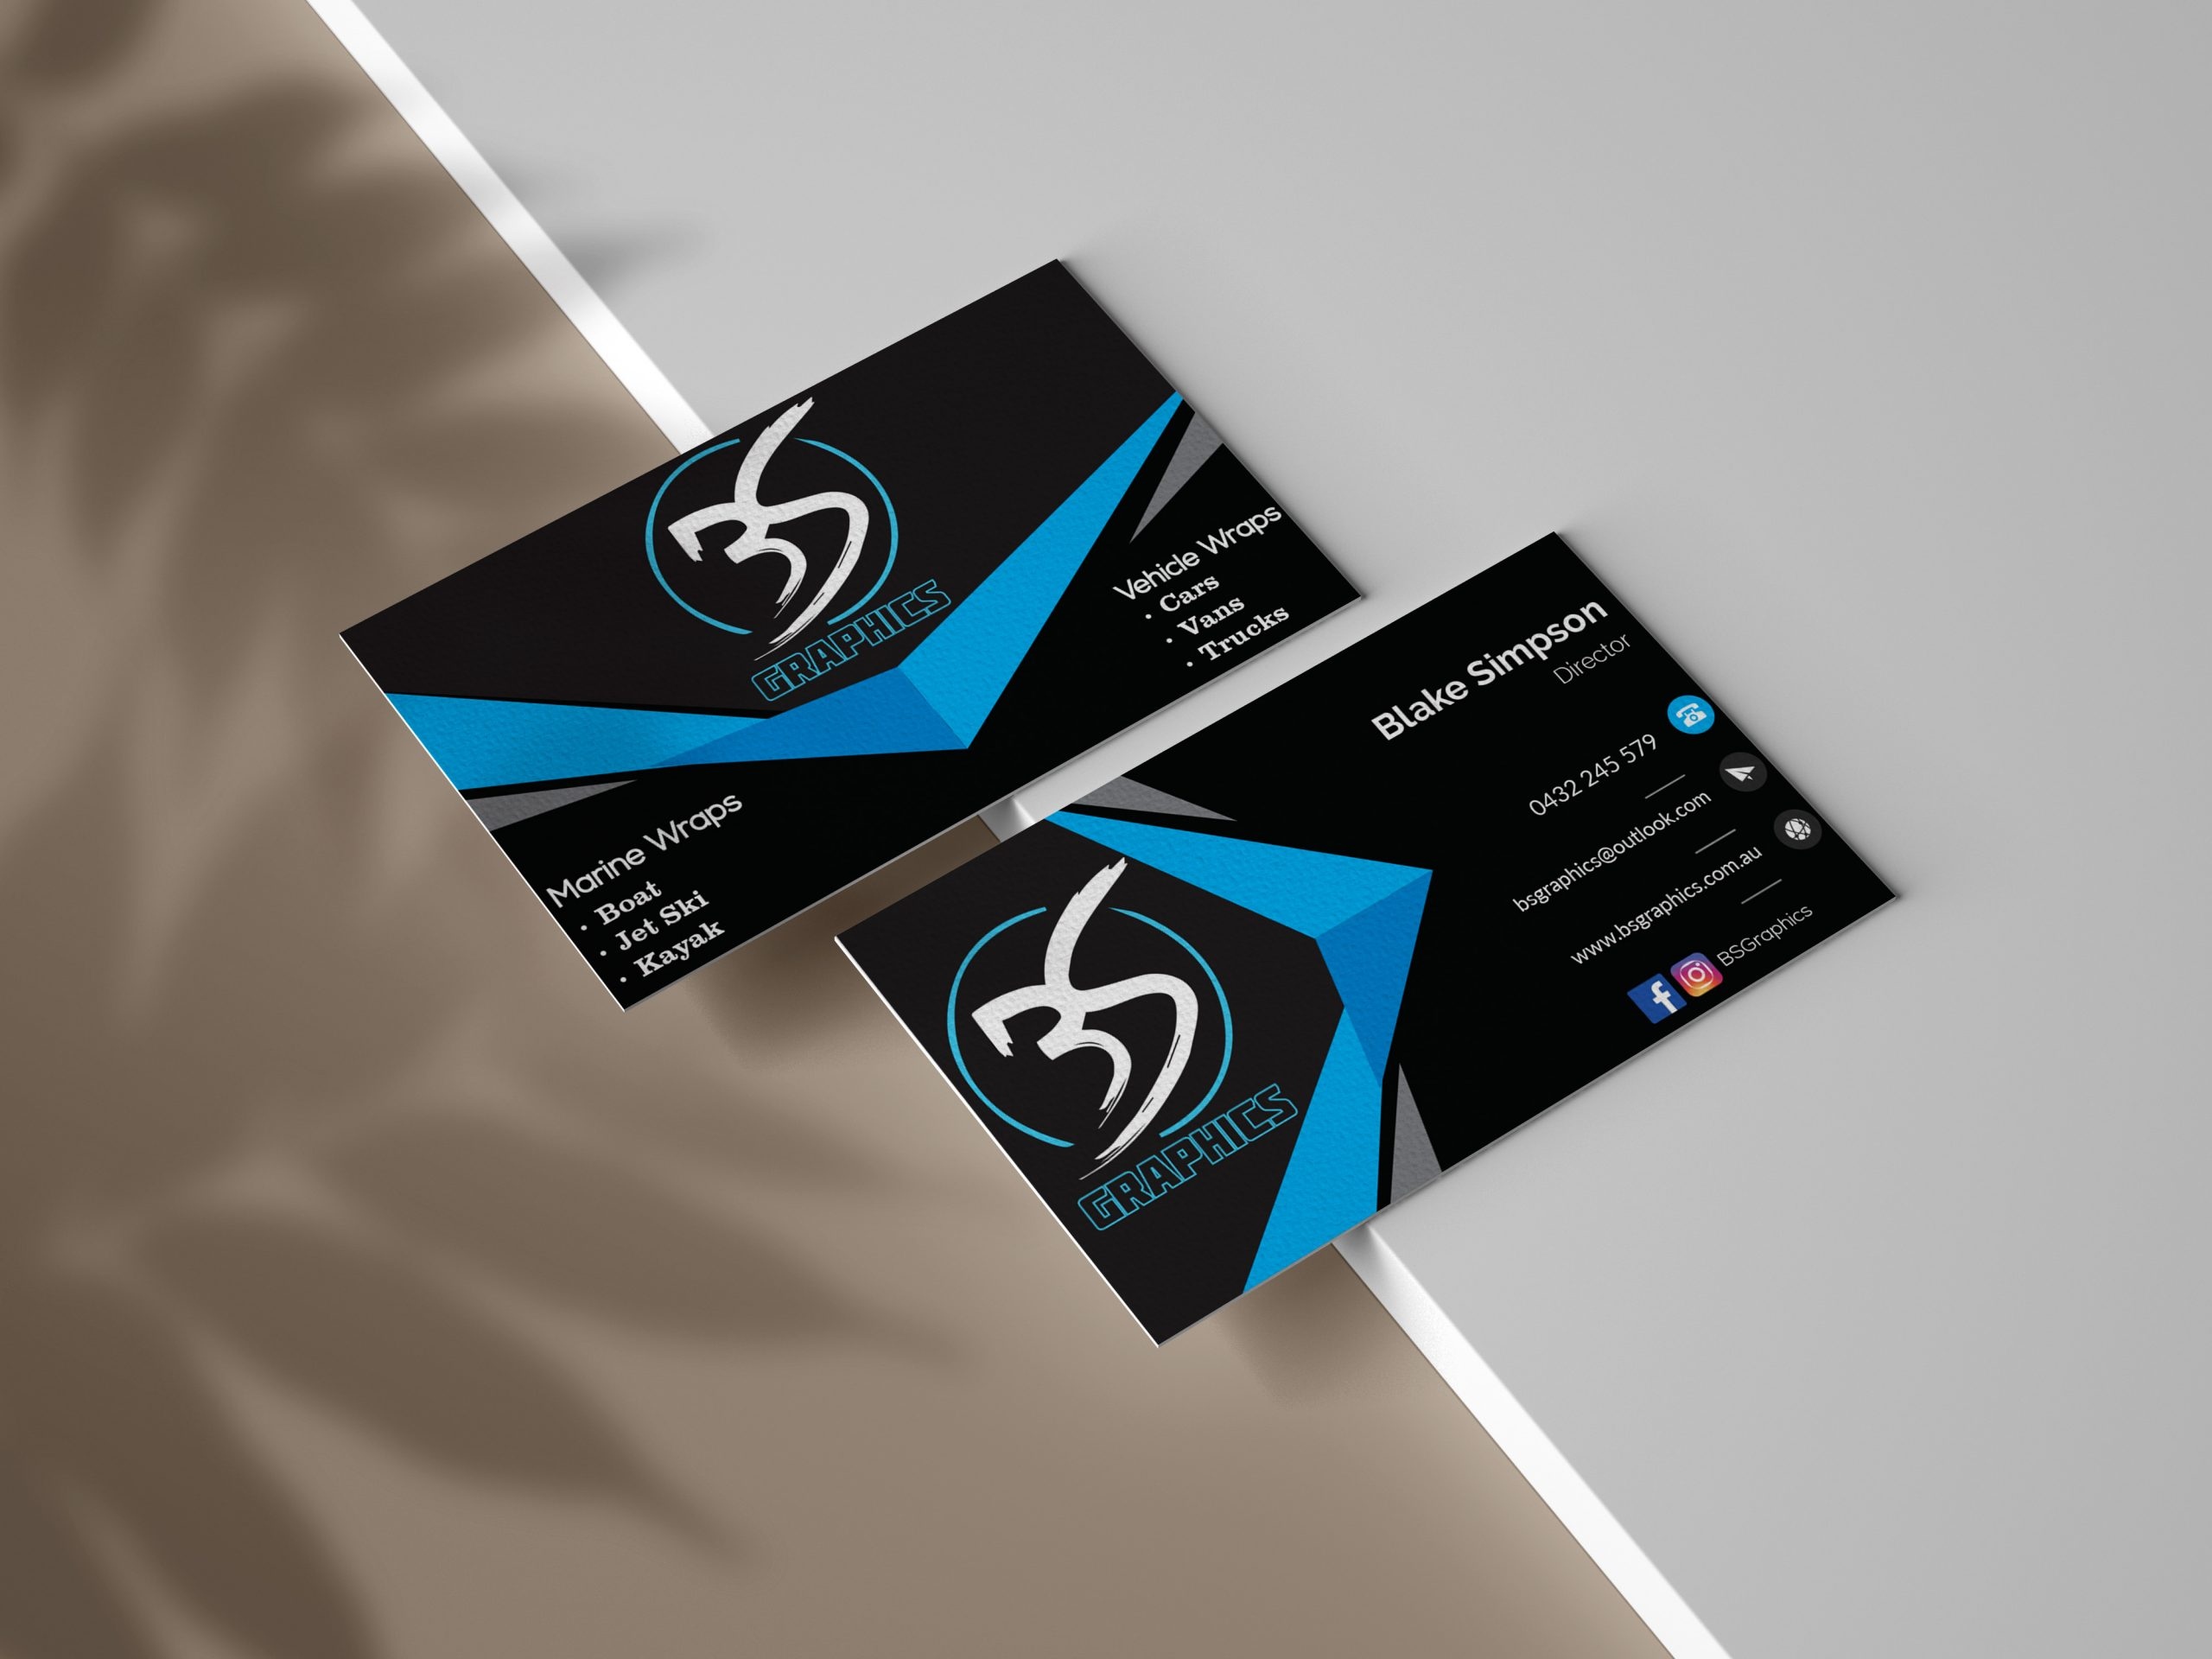 //priorityprintingsolutions.com.au/wp-content/uploads/2020/08/Business-Card-BS-Graphics-scaled.jpg